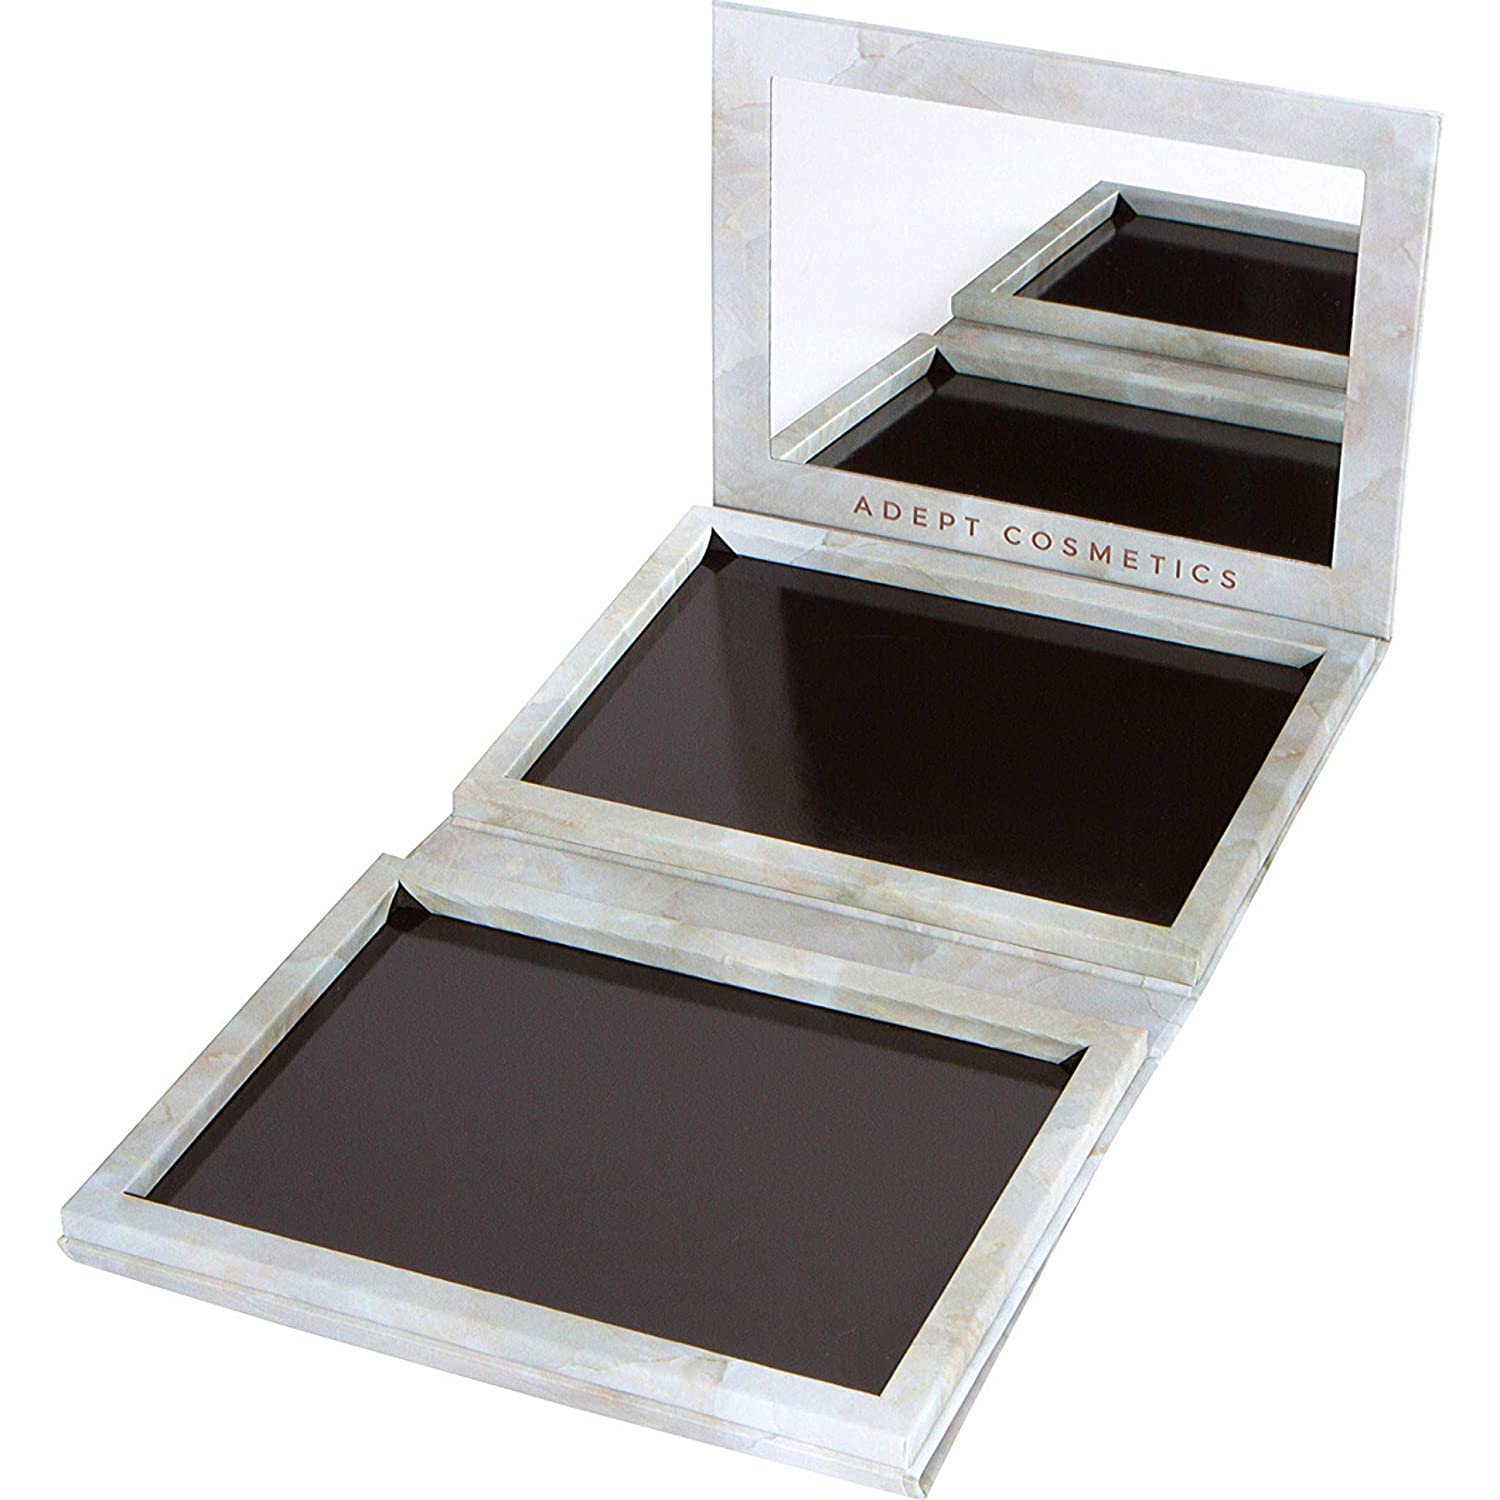 Marble Extra Large Empty Magnetic Makeup New sales Lowest price challenge Palette 70 Standa Holds